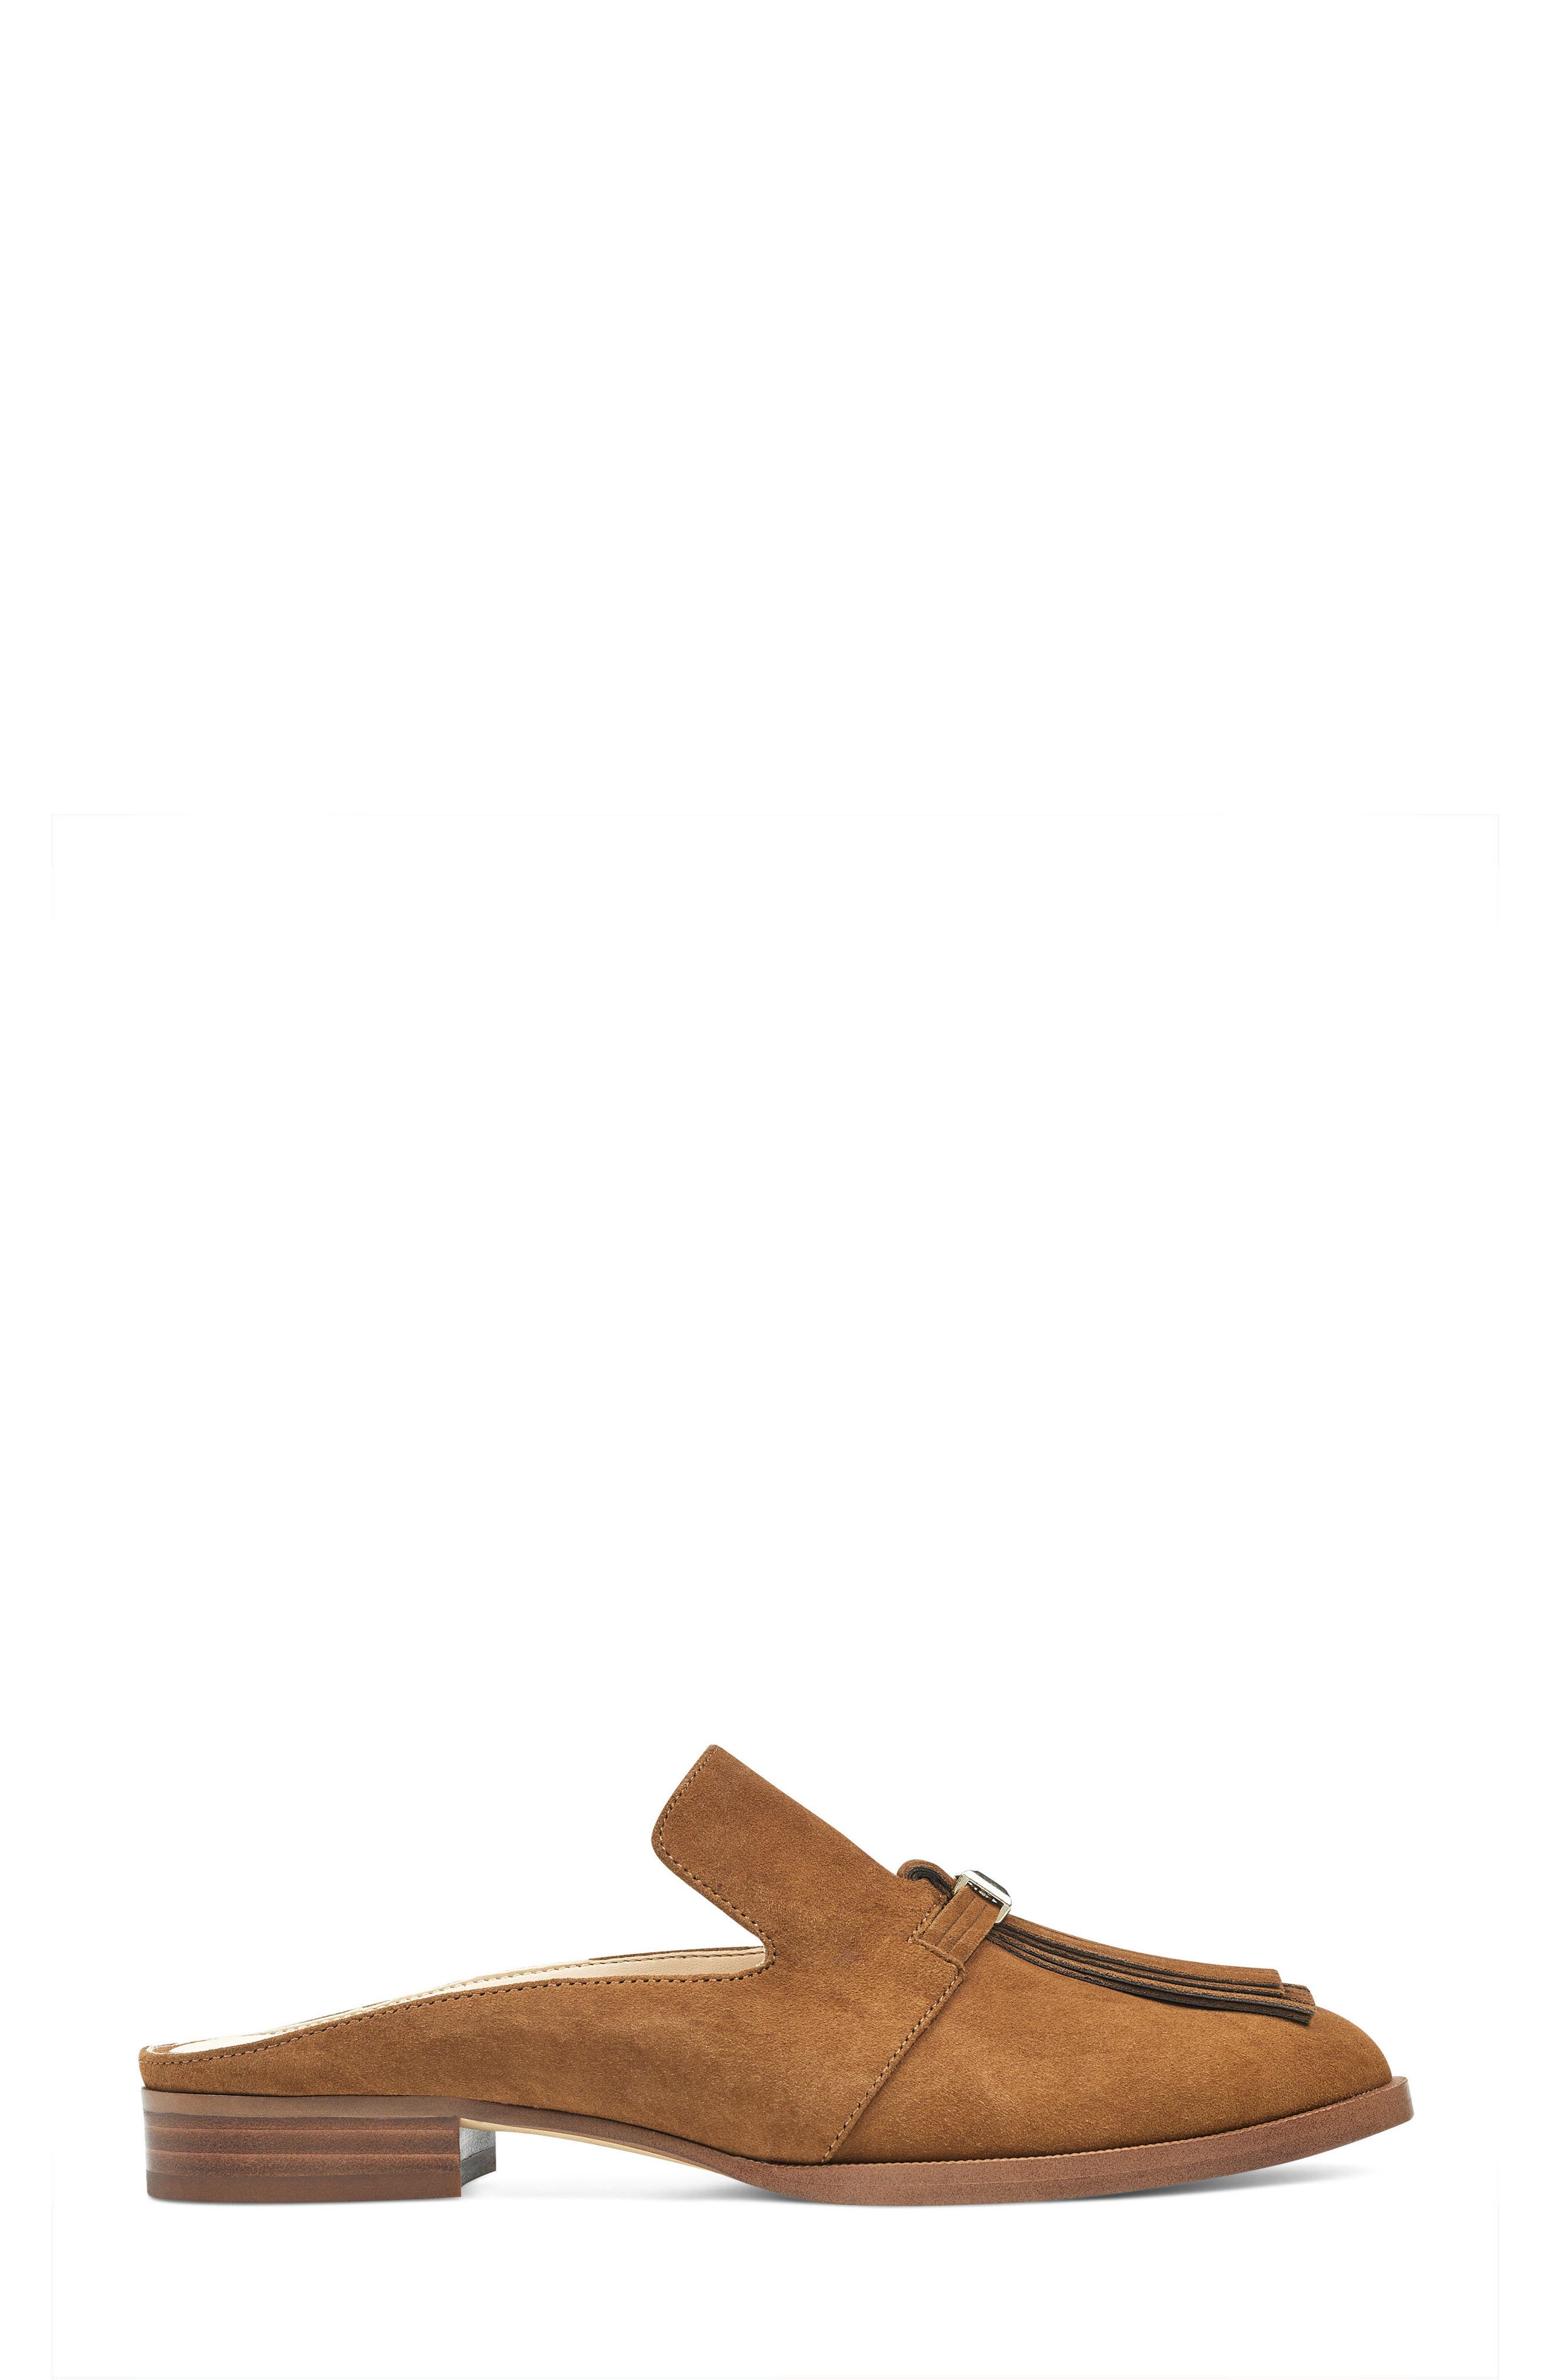 Huebart Loafer Mule,                             Alternate thumbnail 3, color,                             Brown Suede